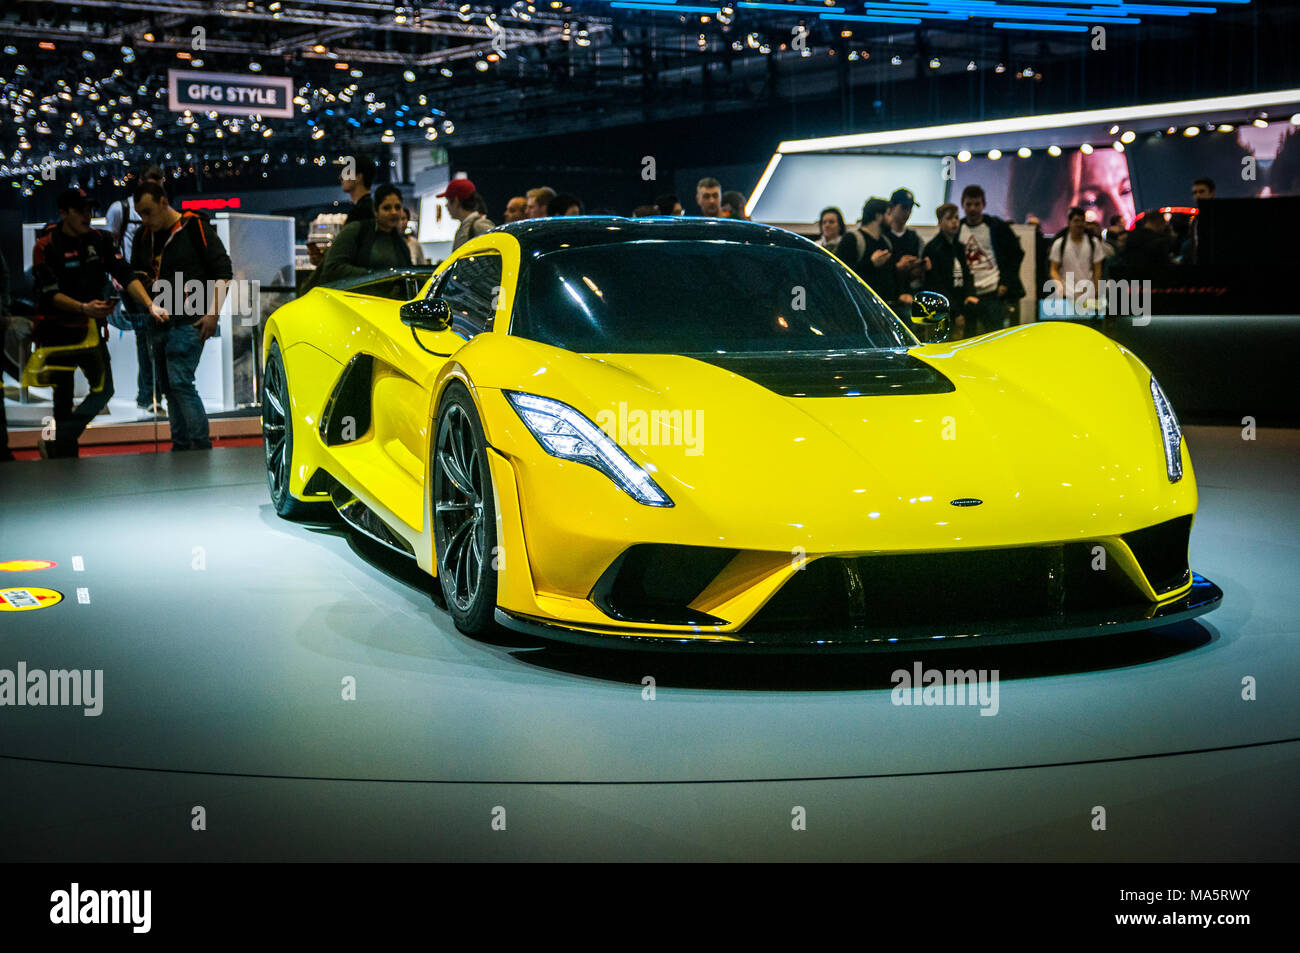 GENEVA, SWITZERLAND - MARCH 17, 2018: Hennessey Venom F5 Superfast sports car presented at the 88th Geneva International Motor Show. Stock Photo